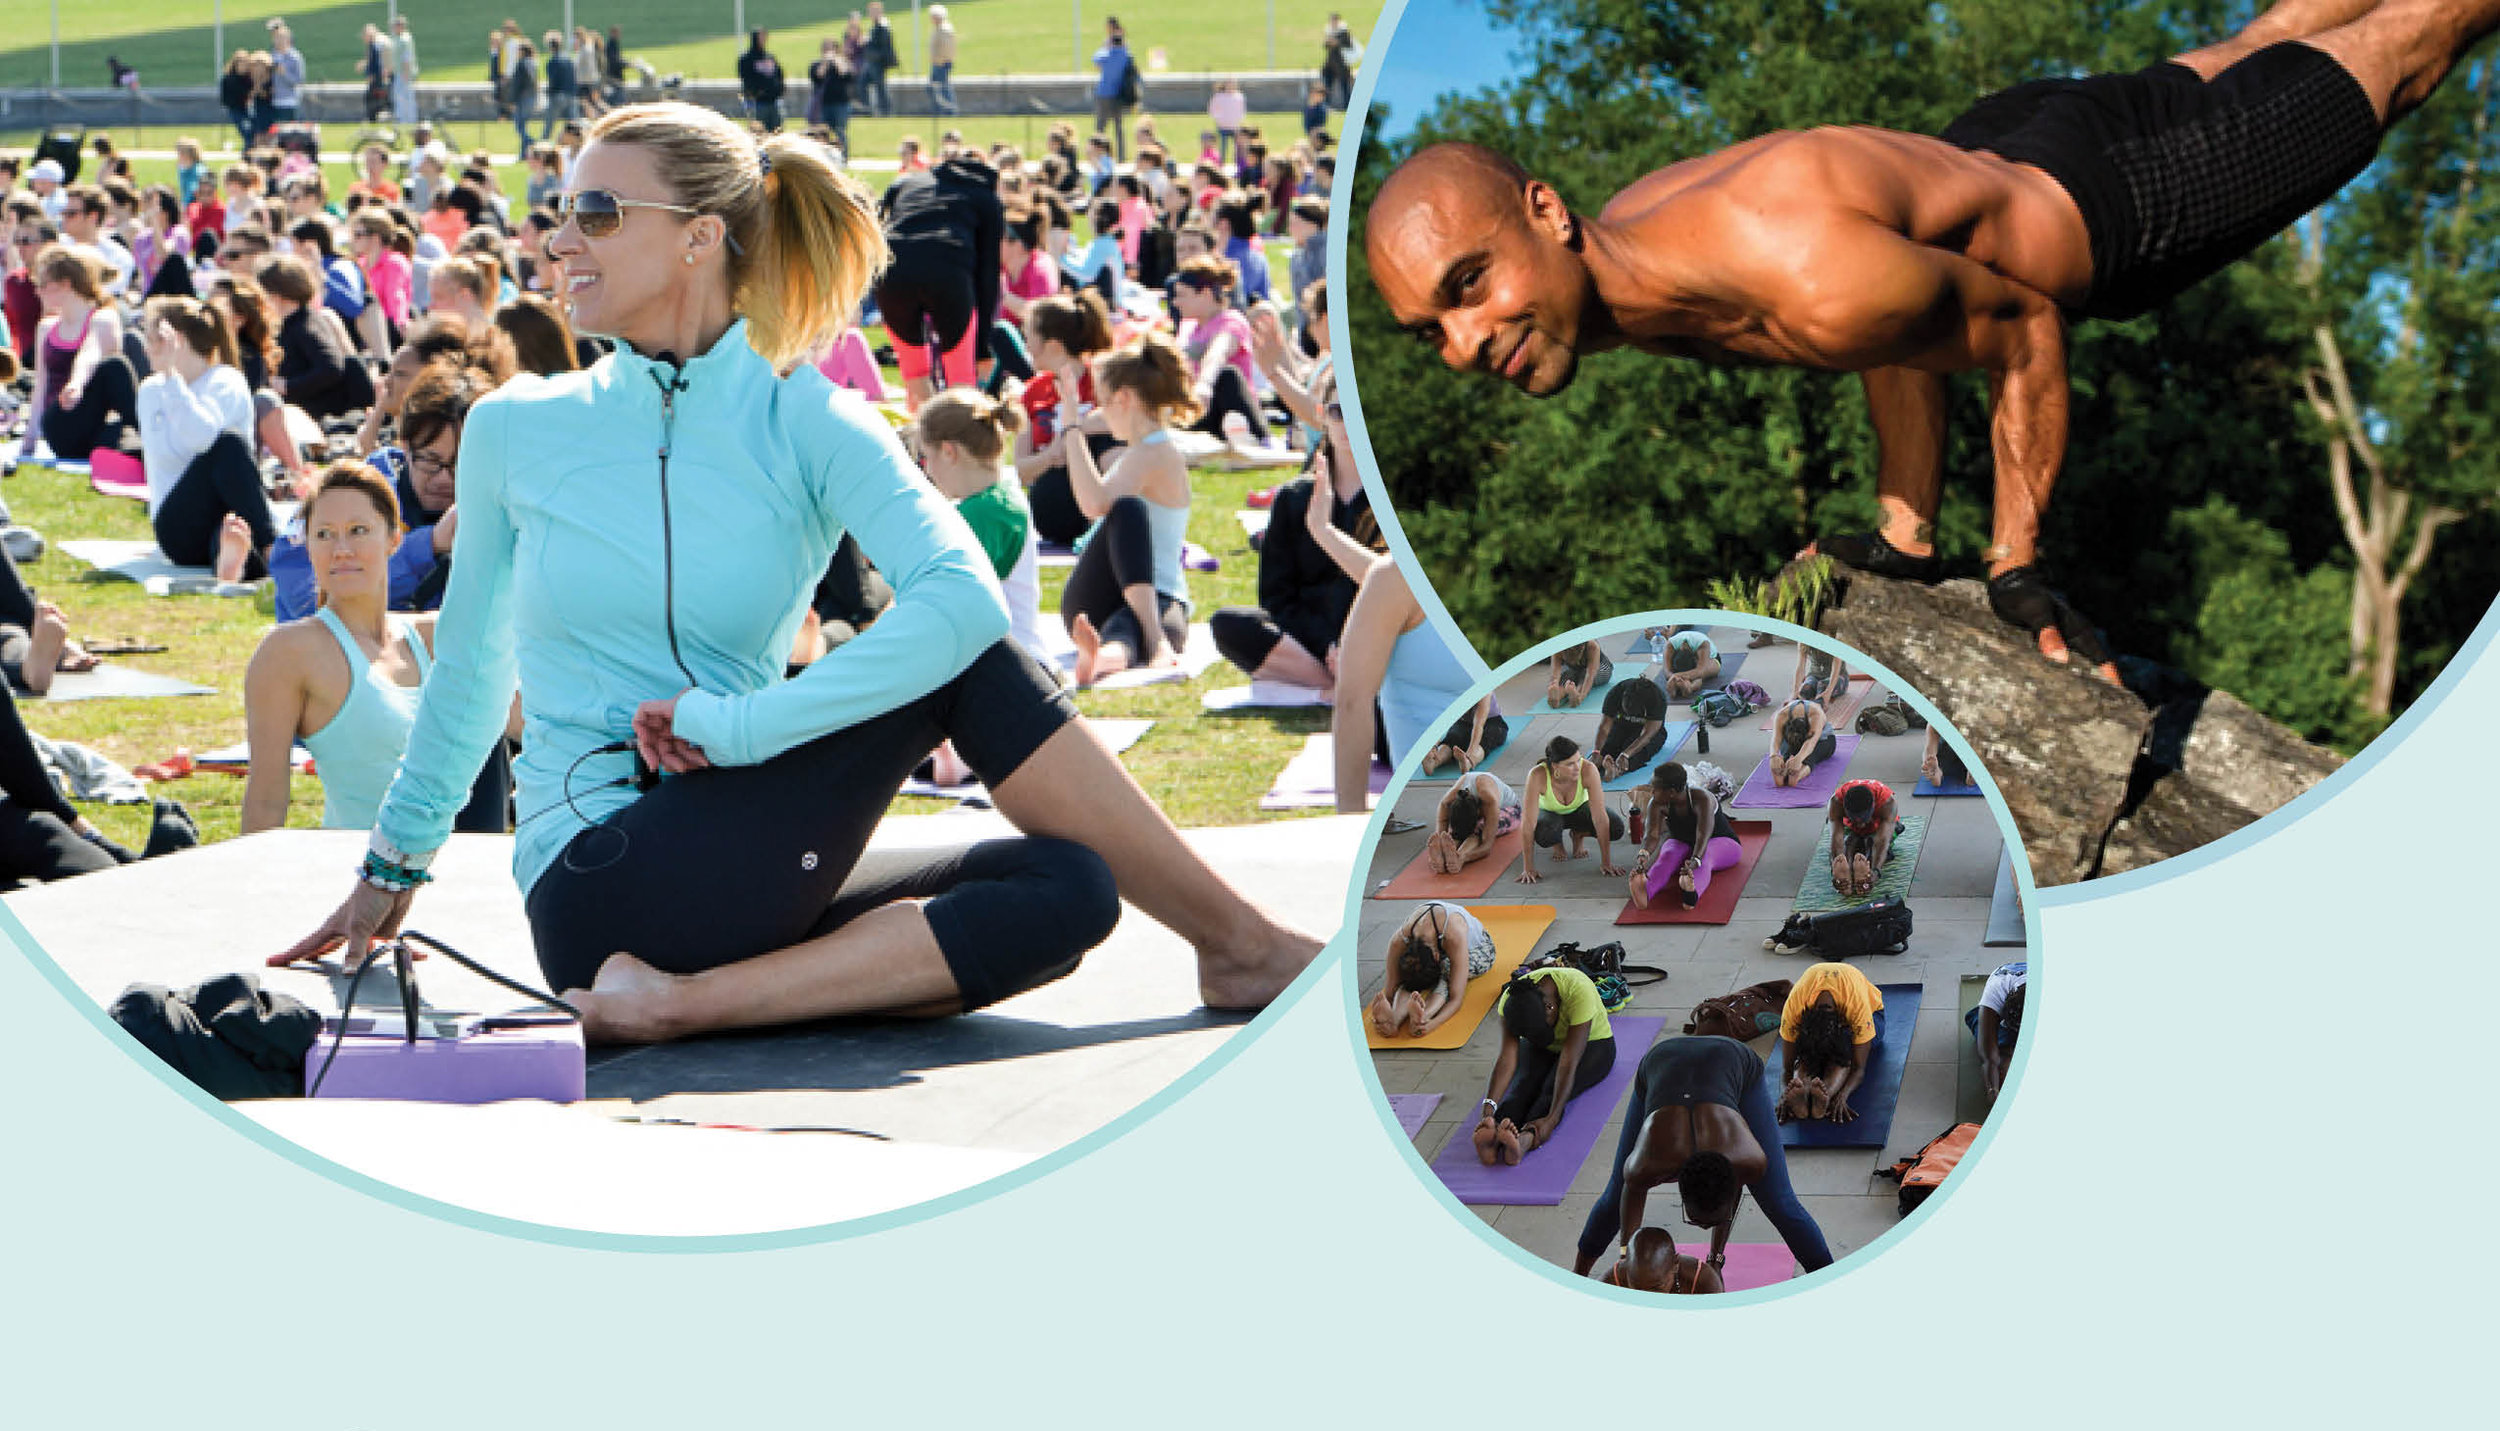 Mimi & Hawah lead our Commmunity   Stronger Together    September 6 at 6:45pm